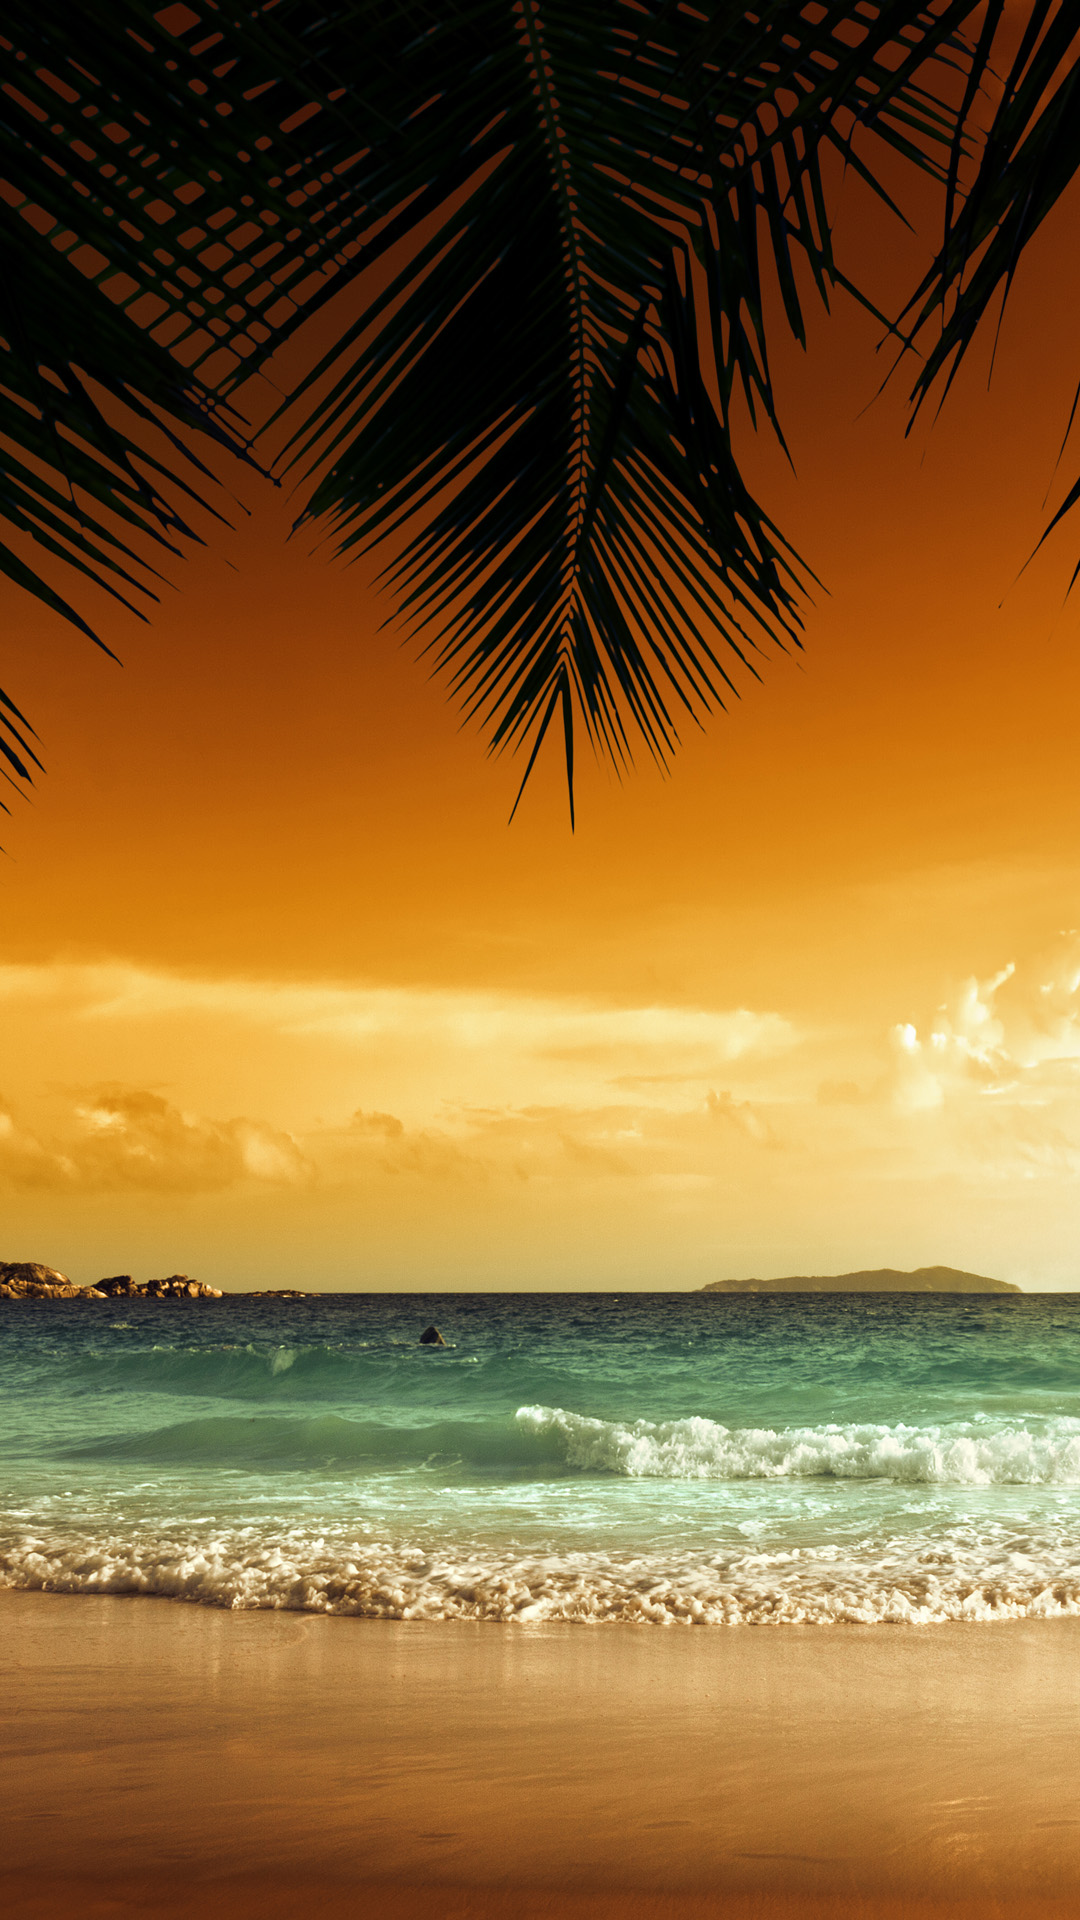 sunset beach iphone 6 plus wallpaper